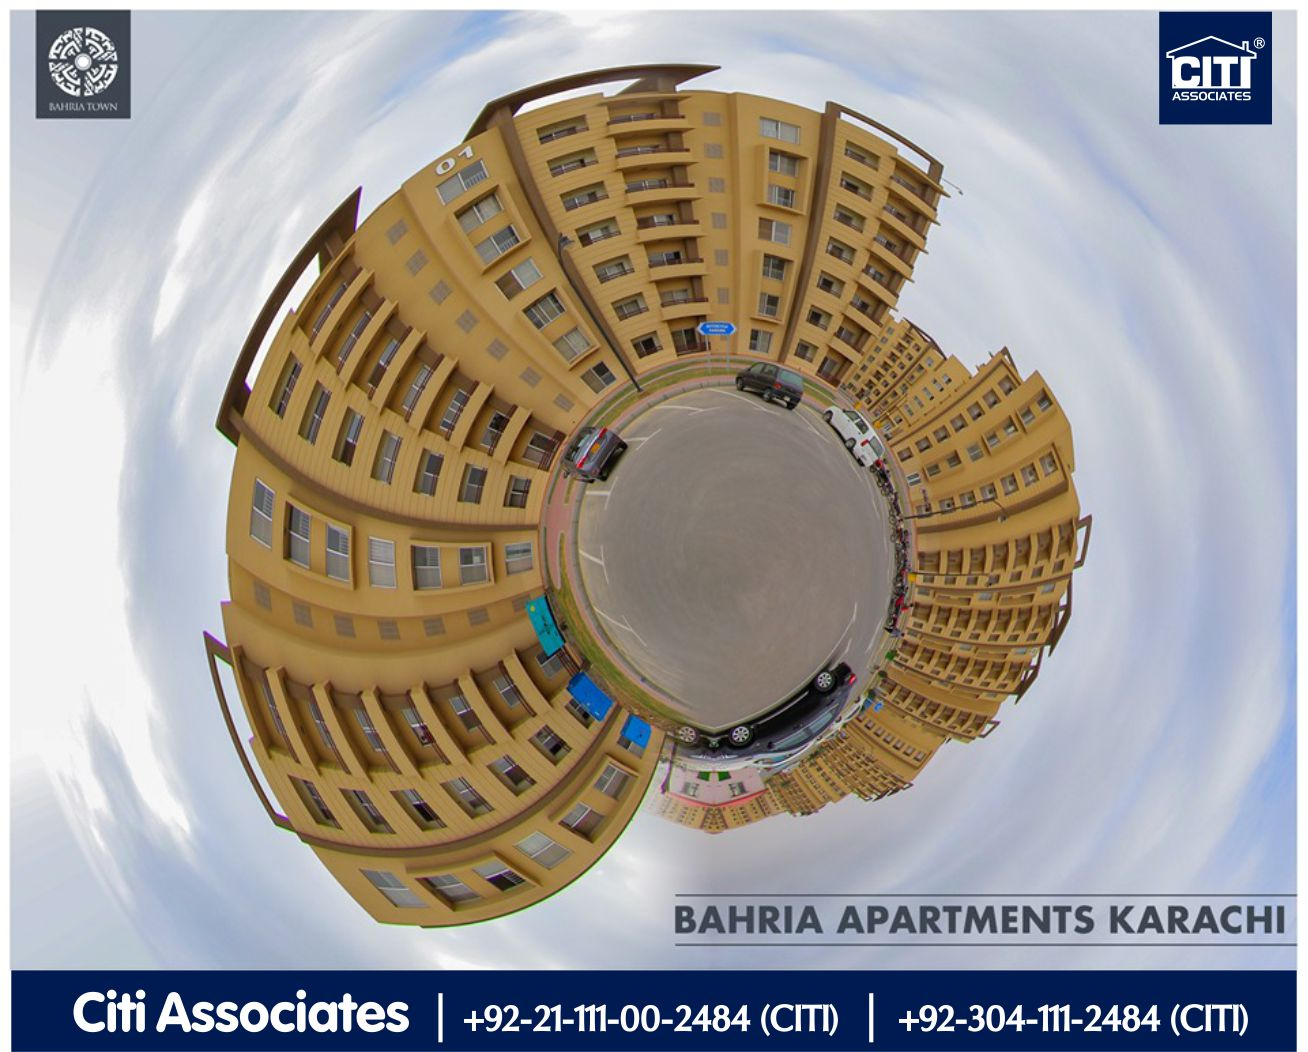 Top view of 'Bahria Apartments Karachi'